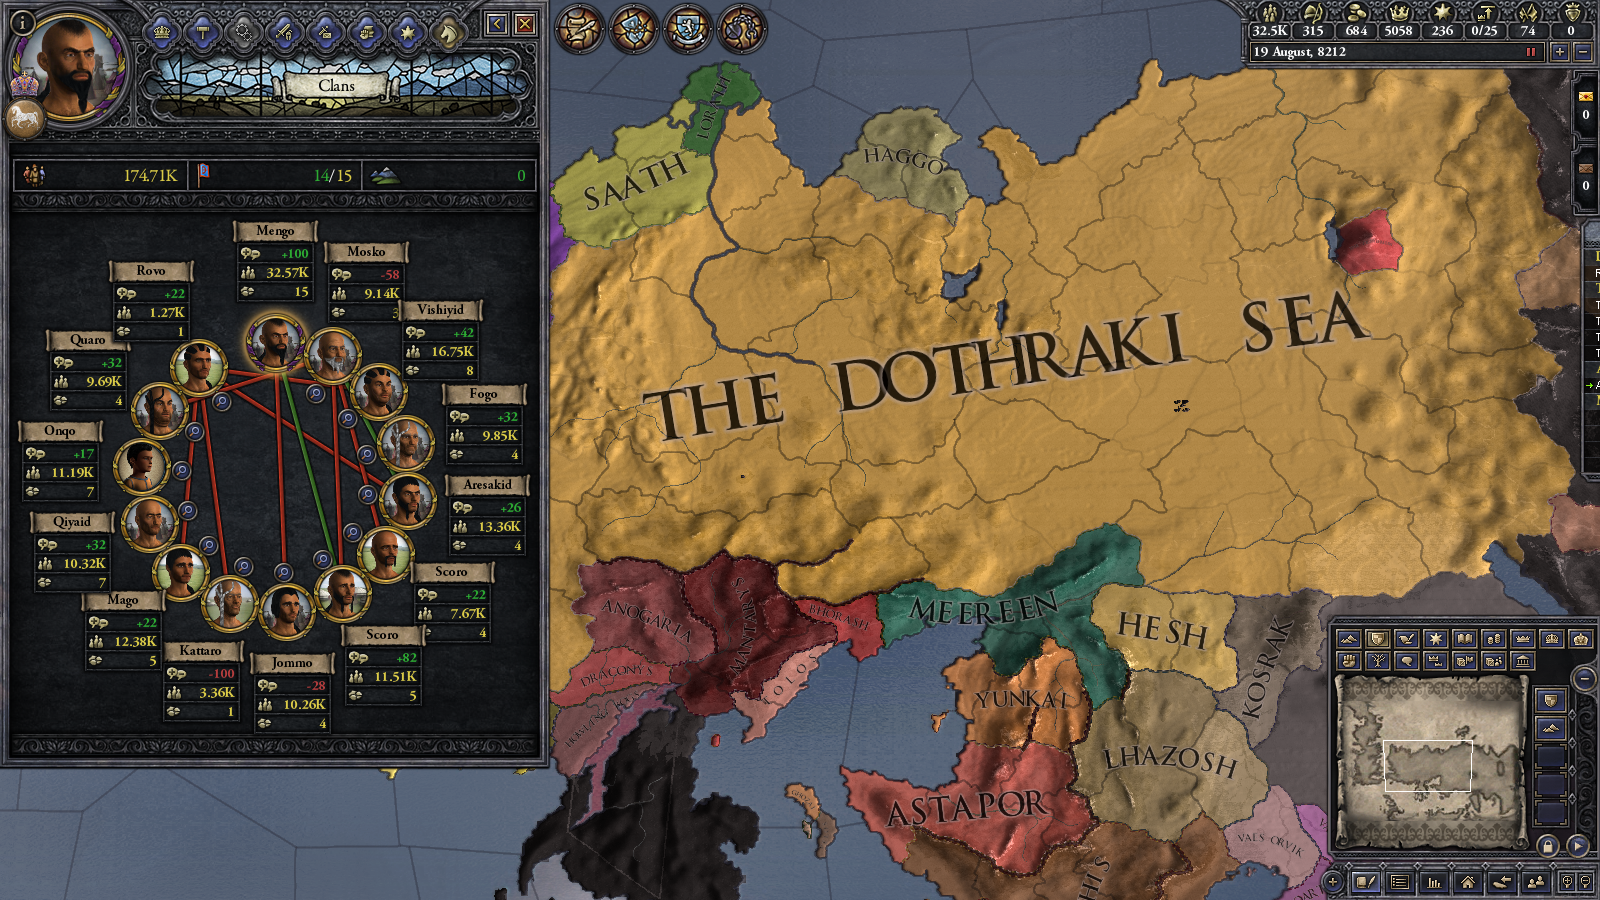 Crusader kings 2 a game of thrones ck2agot mod mod db qbmwryvg publicscrutiny Image collections